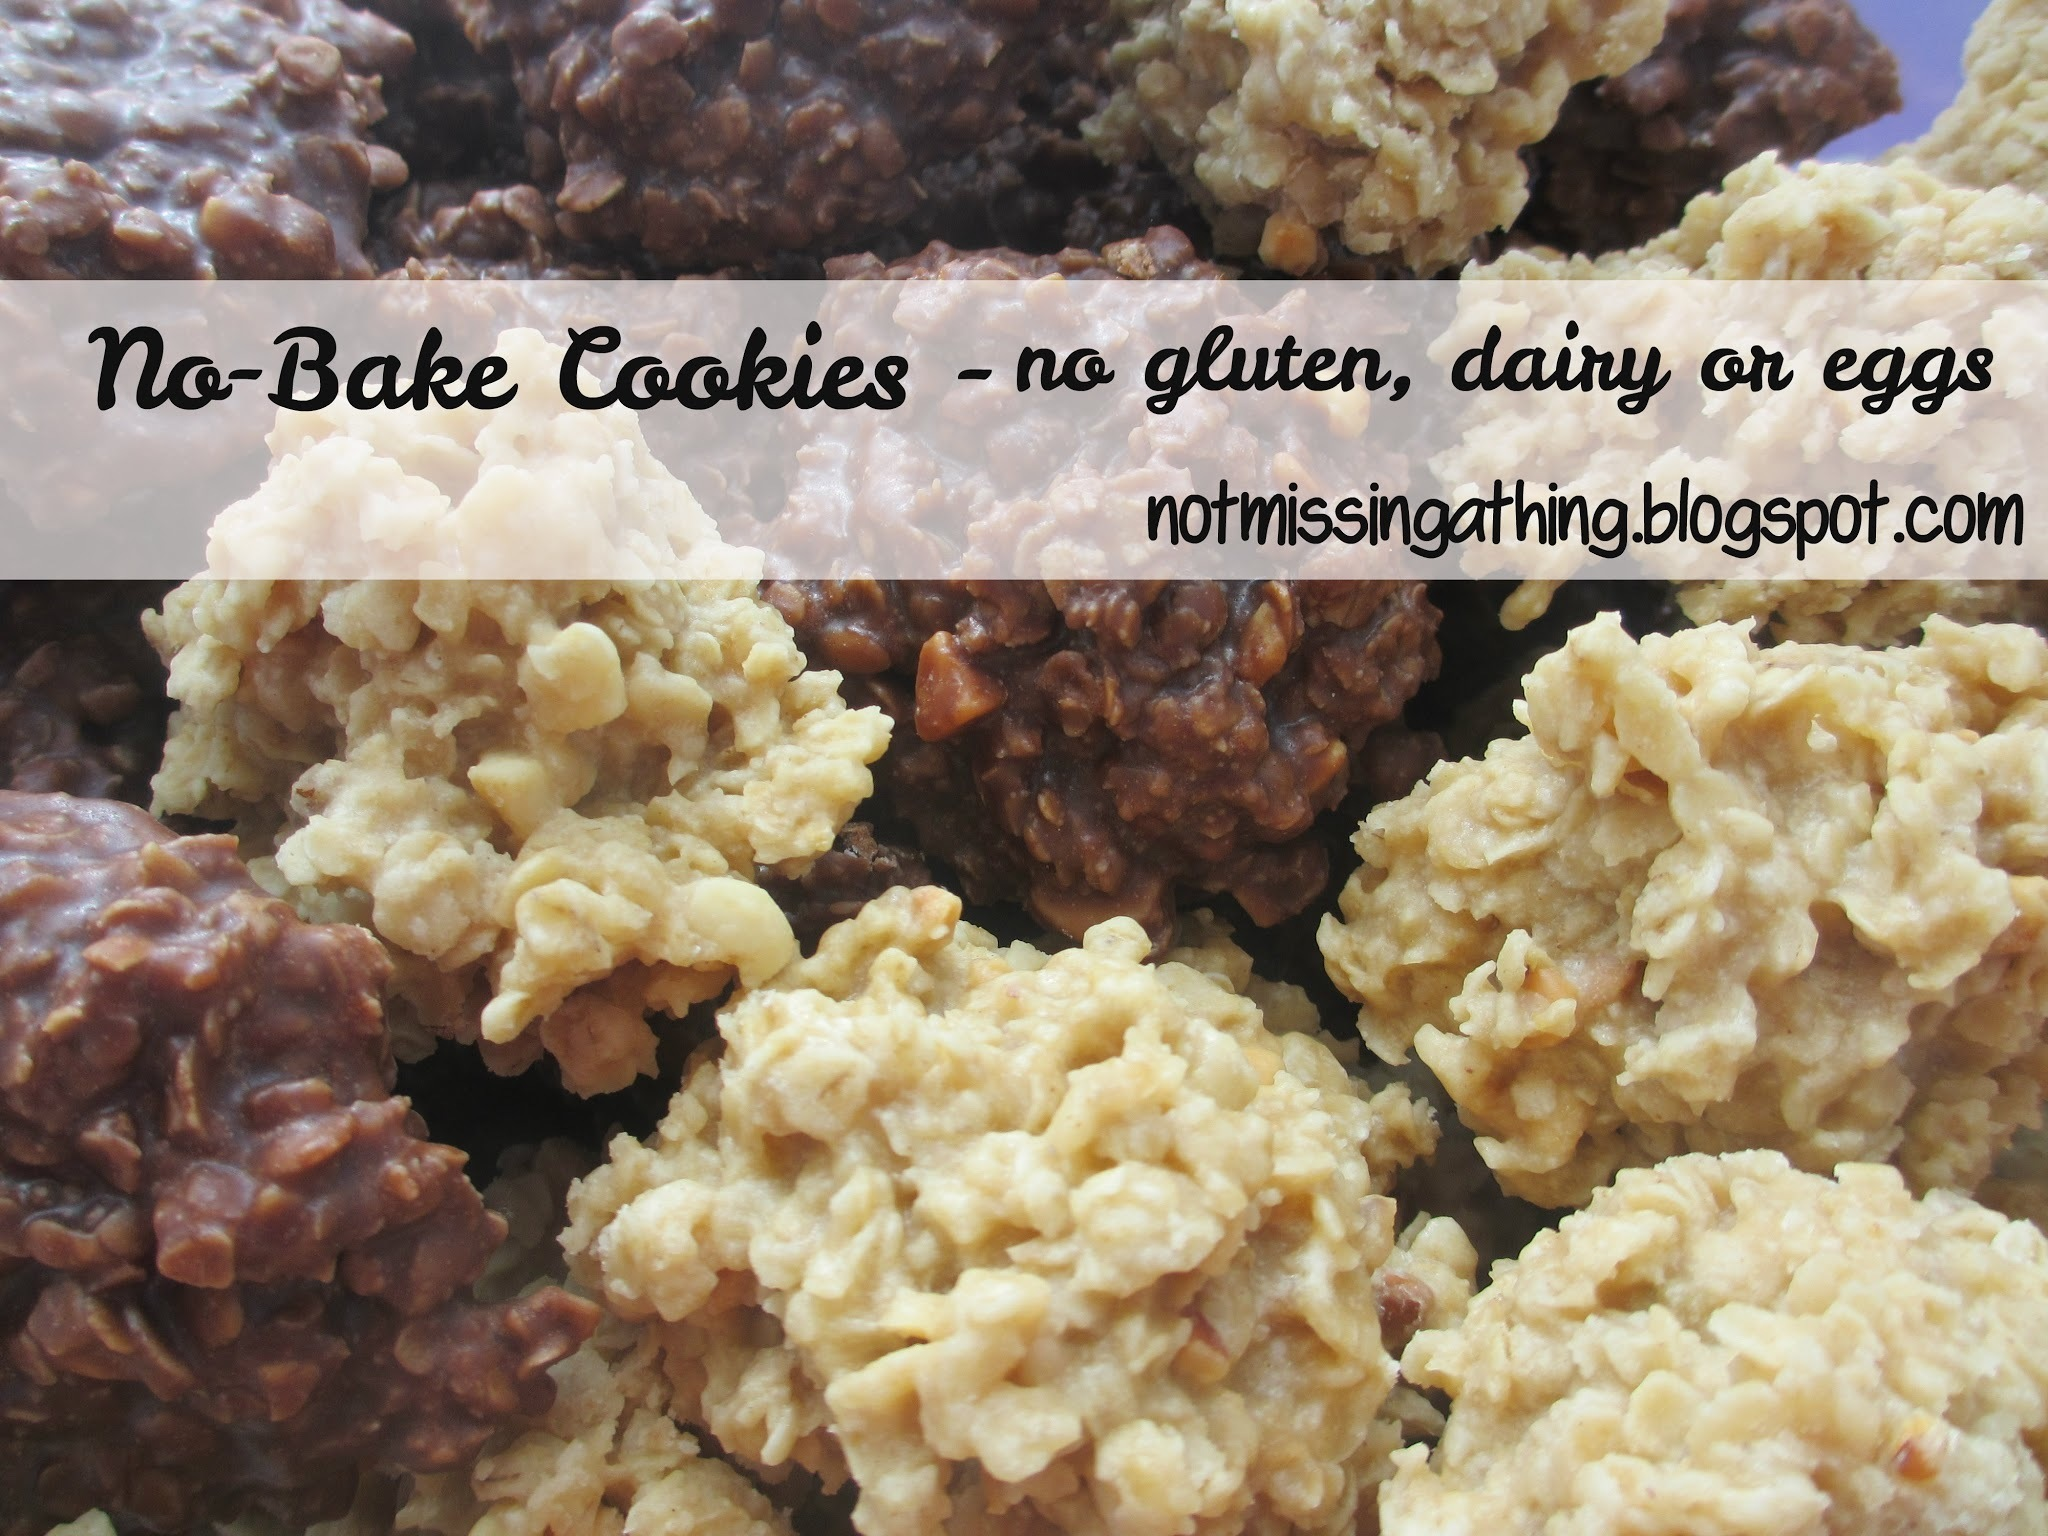 No-Bake Chocolate Peanut Butter Cookies {gluten, dairy, egg-free}